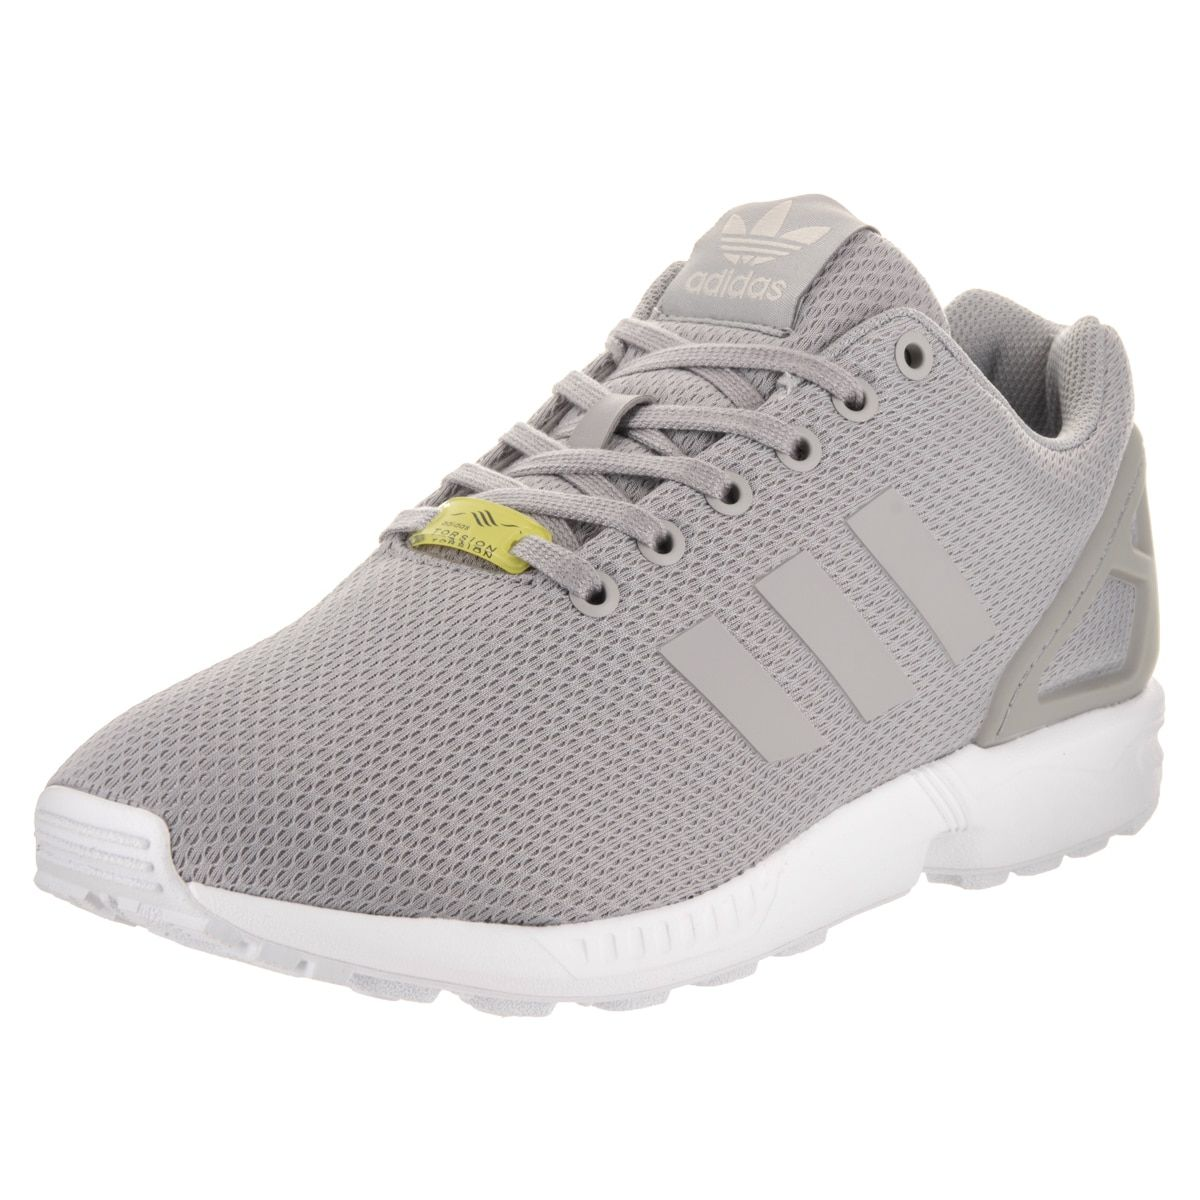 adidas Online Shop Adidas Zx Flux Shoes Grey Blue | Men